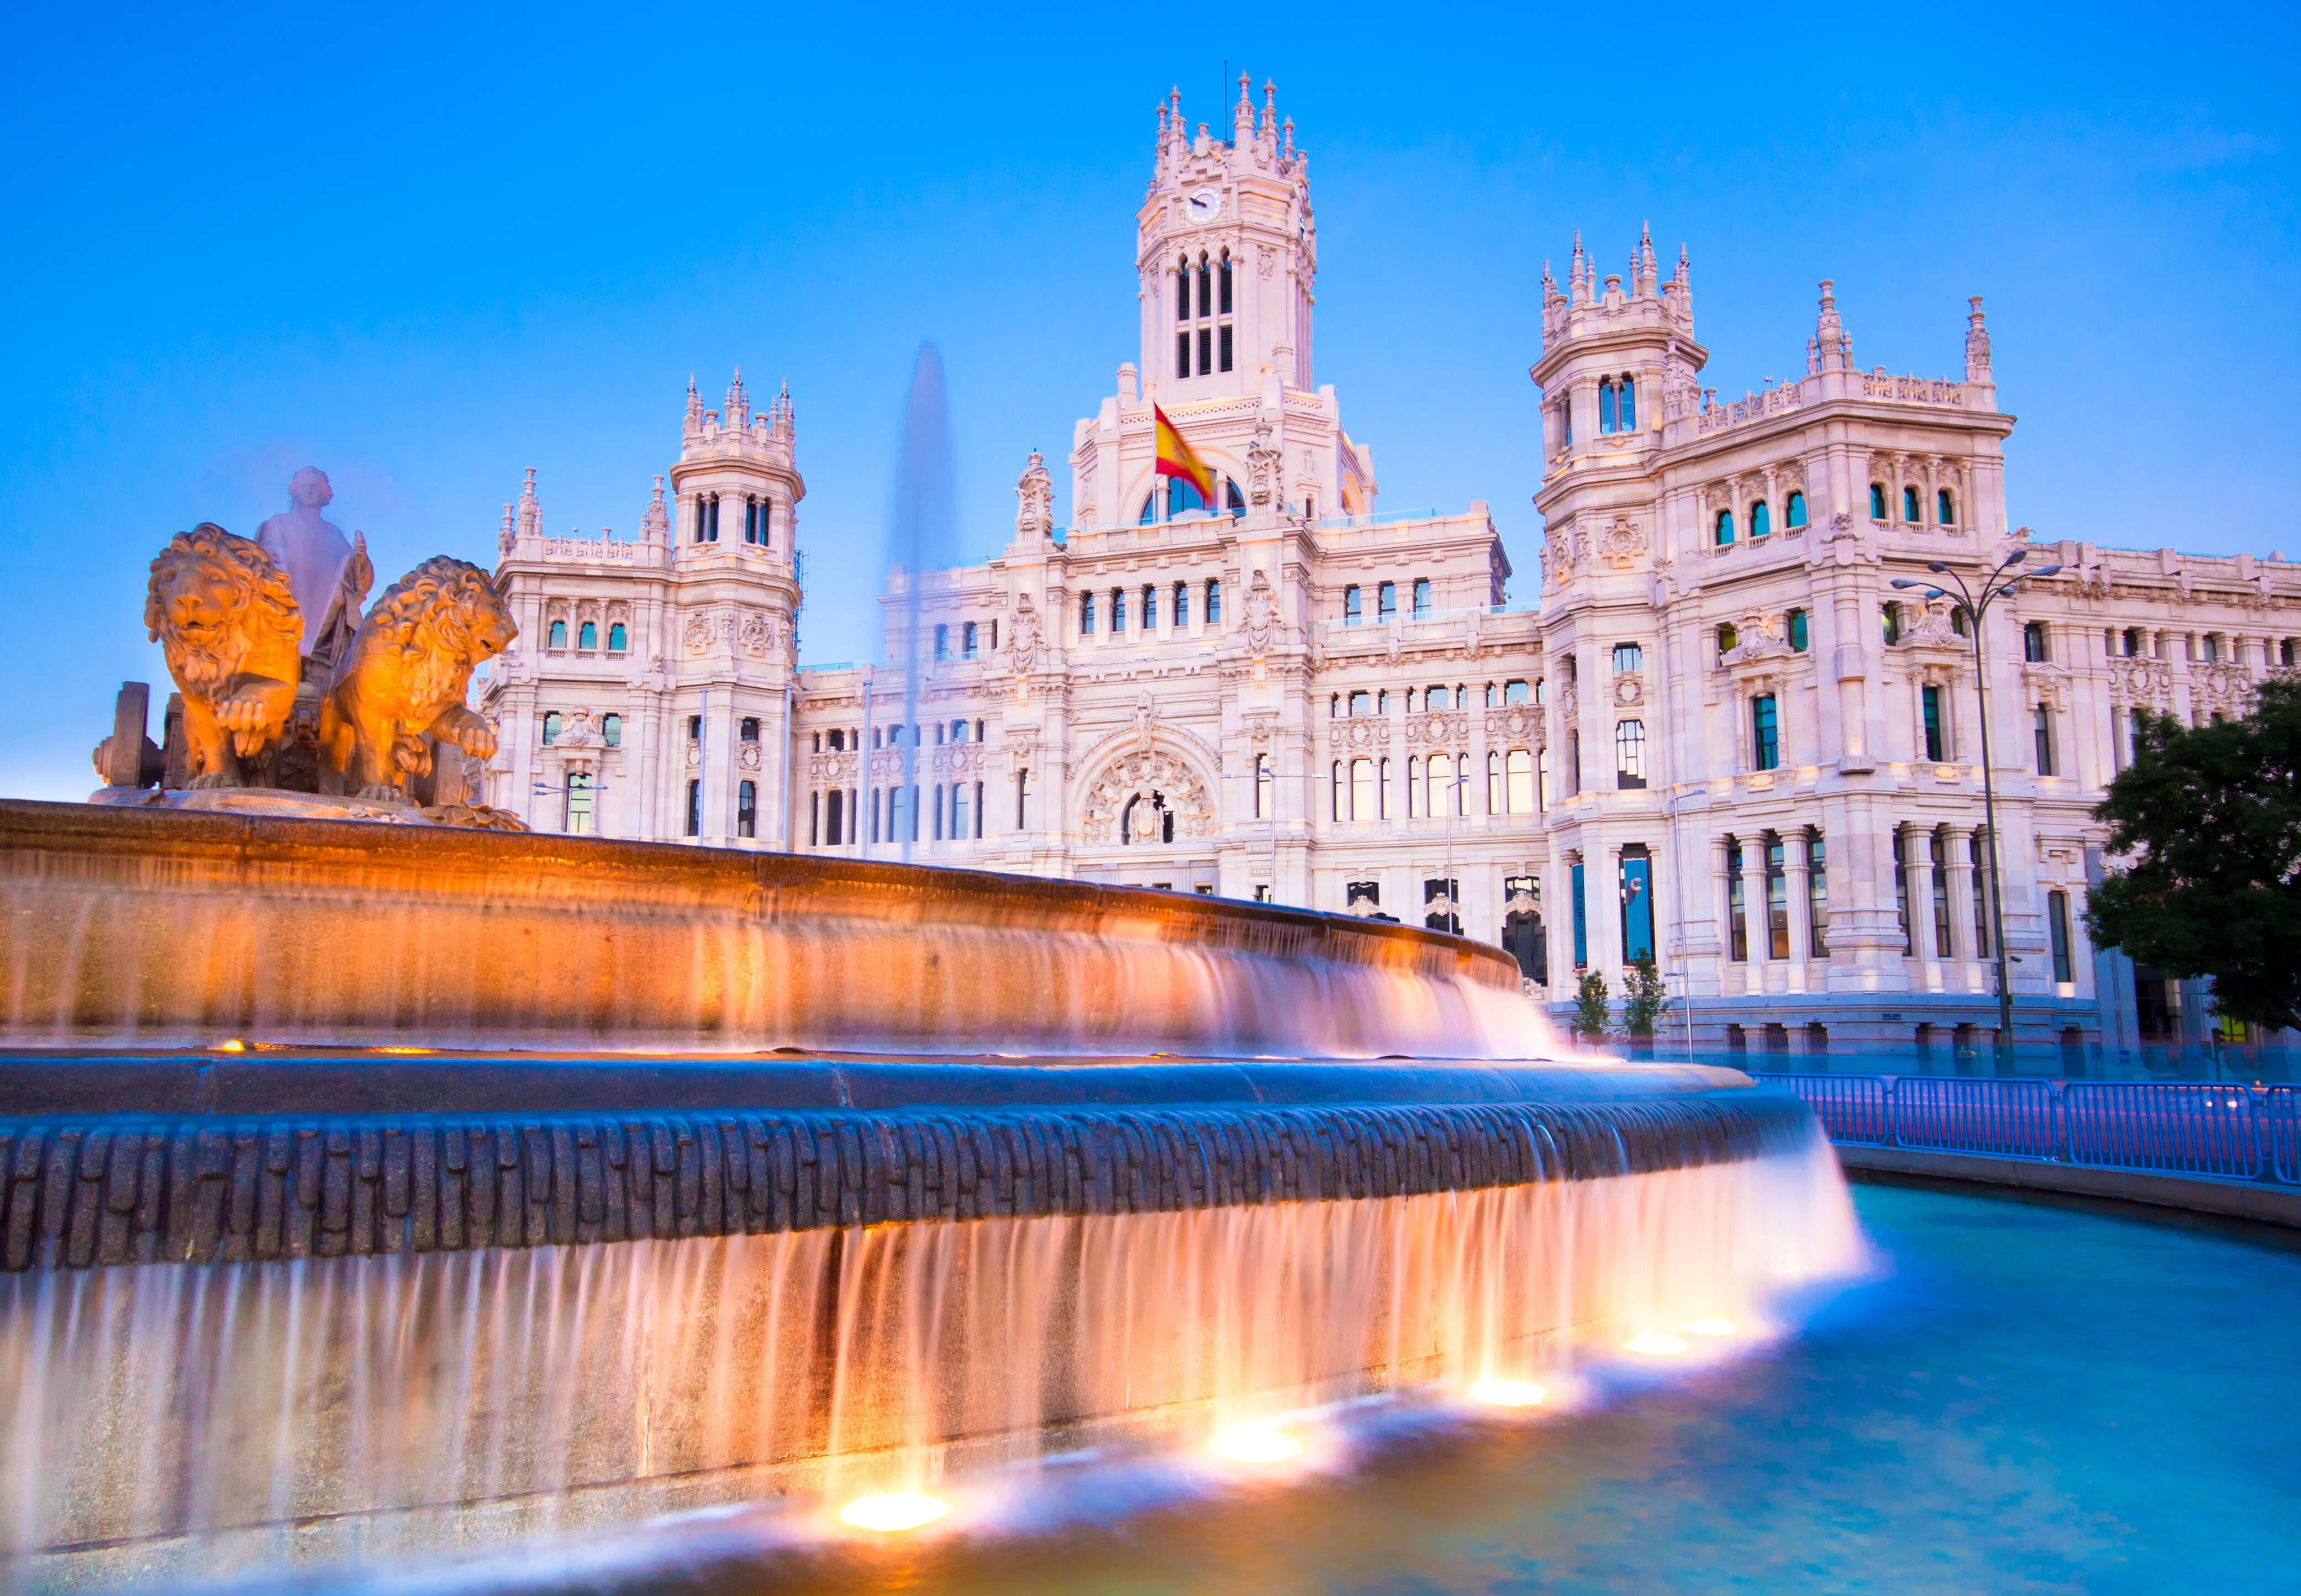 Madrid & Barcelona featuring the AVE High-Speed Train